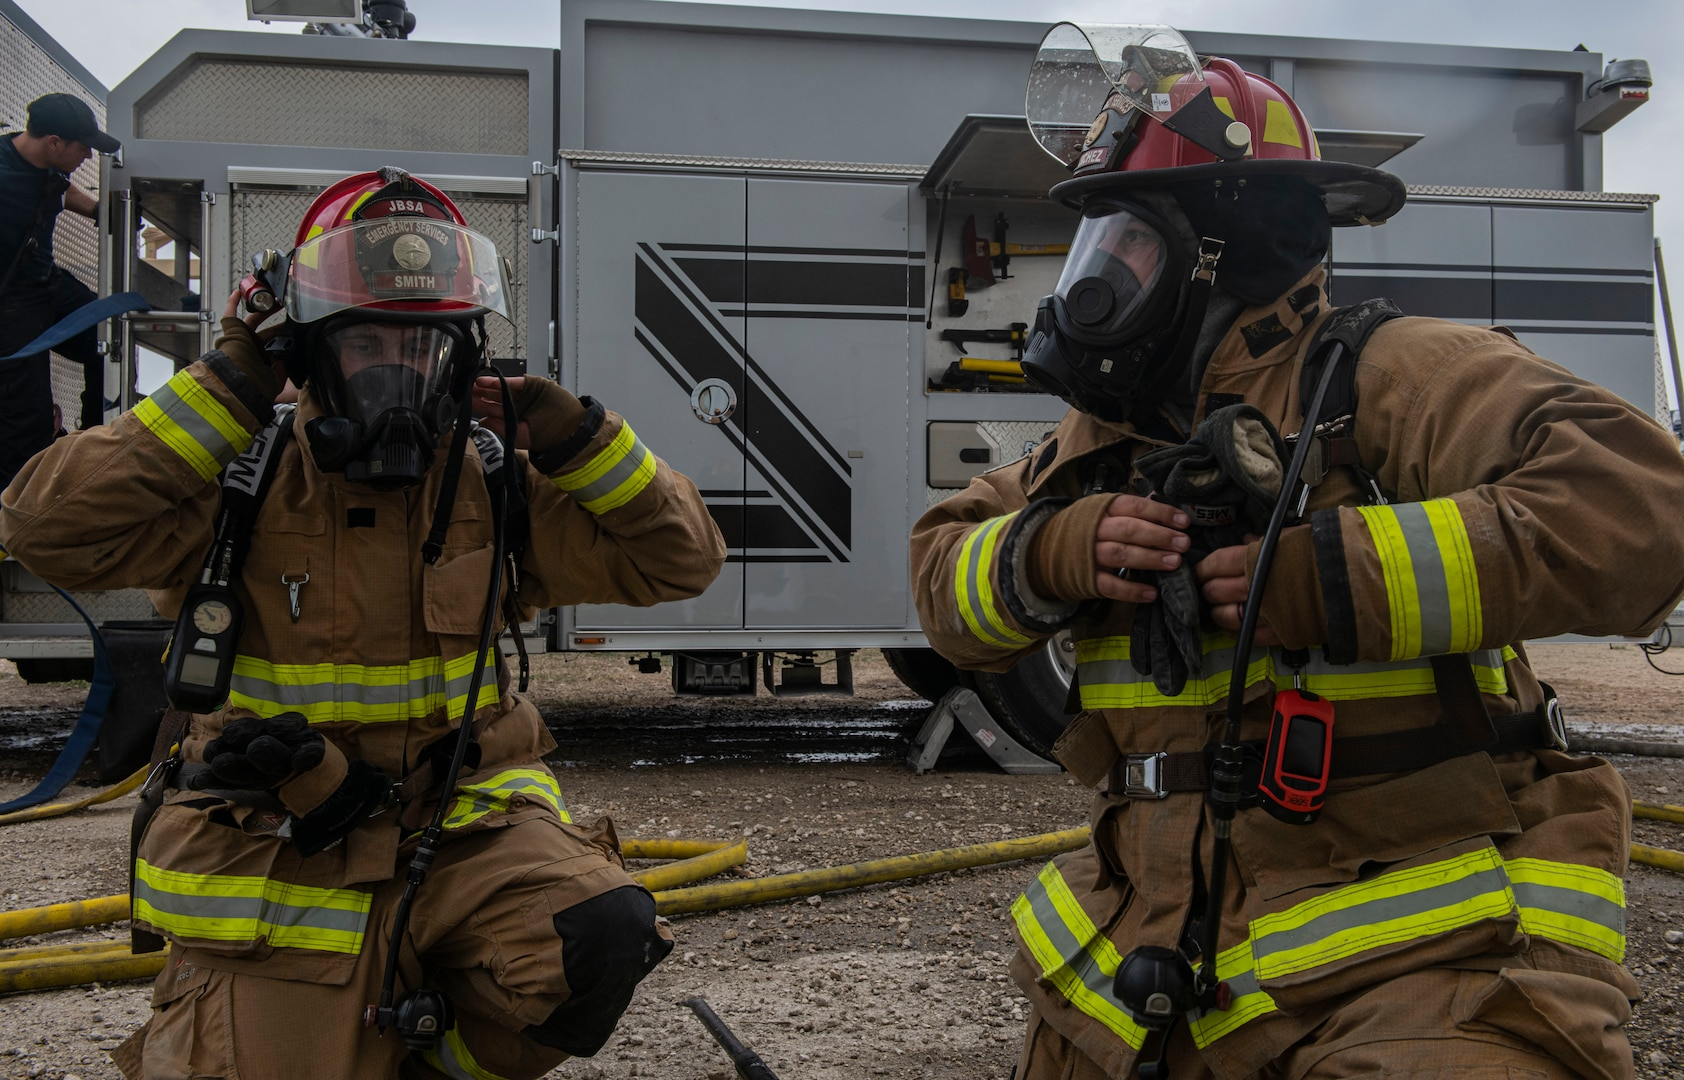 U. S. Air Force Staff Sgt. David Smith, left, and Andrew Sanchez, right, Joint Base San Antonio 902nd Civil Engineer Squadron lead firefighters, prepare for a forced entry scenario during a live fire training exercise, April 14, 2021, at Joint Base San Antonio-Randolph, Texas.